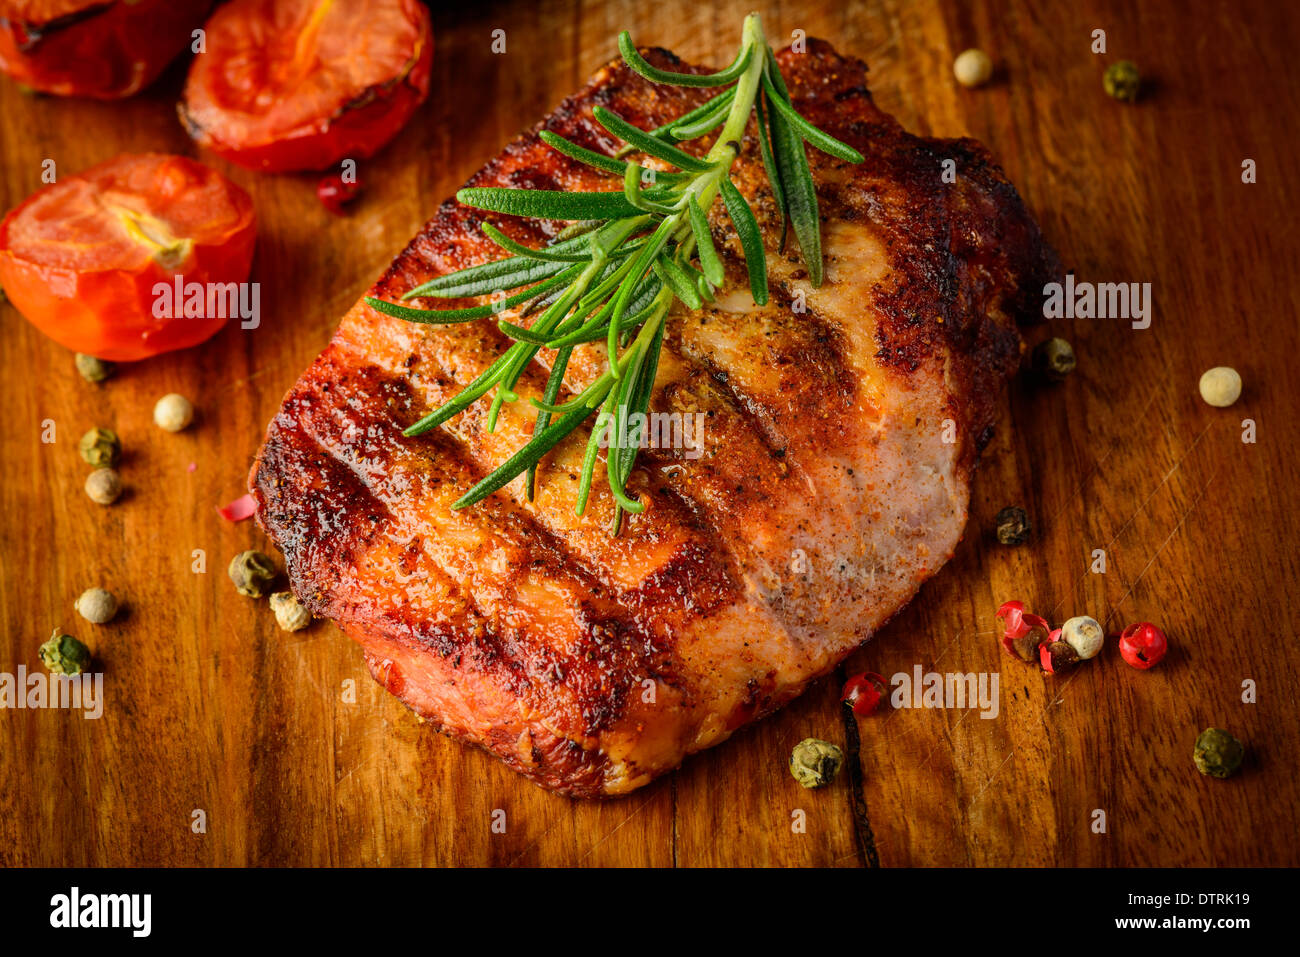 closeup detail of grilled meat steak with spices and rosemary on a wooden plate Stock Photo